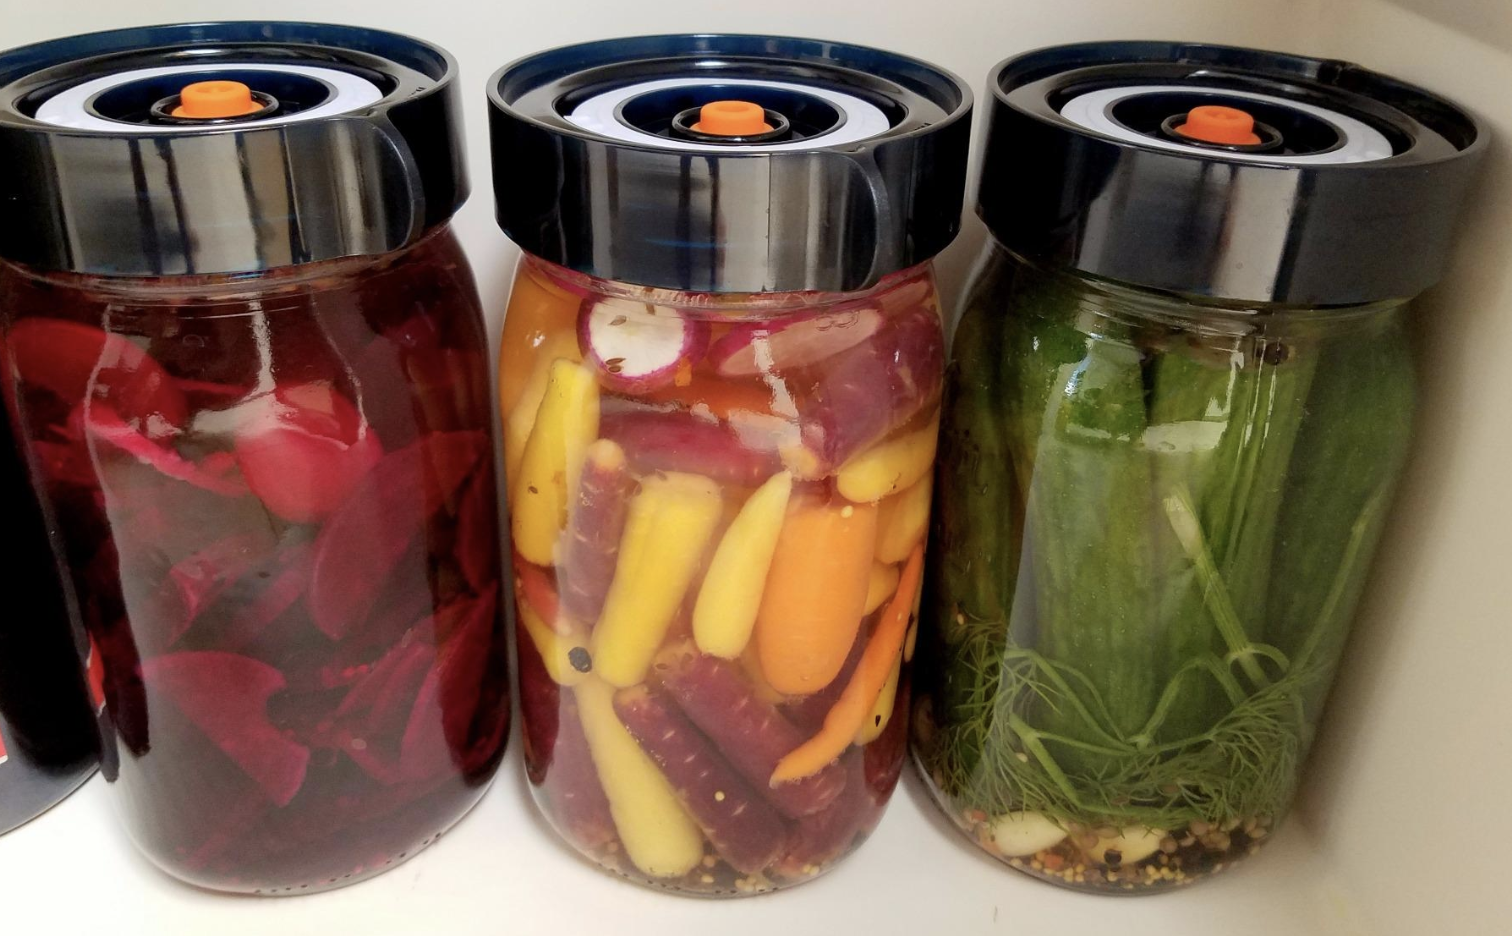 Three jars of fermenting beets, carrots, and cucumbers